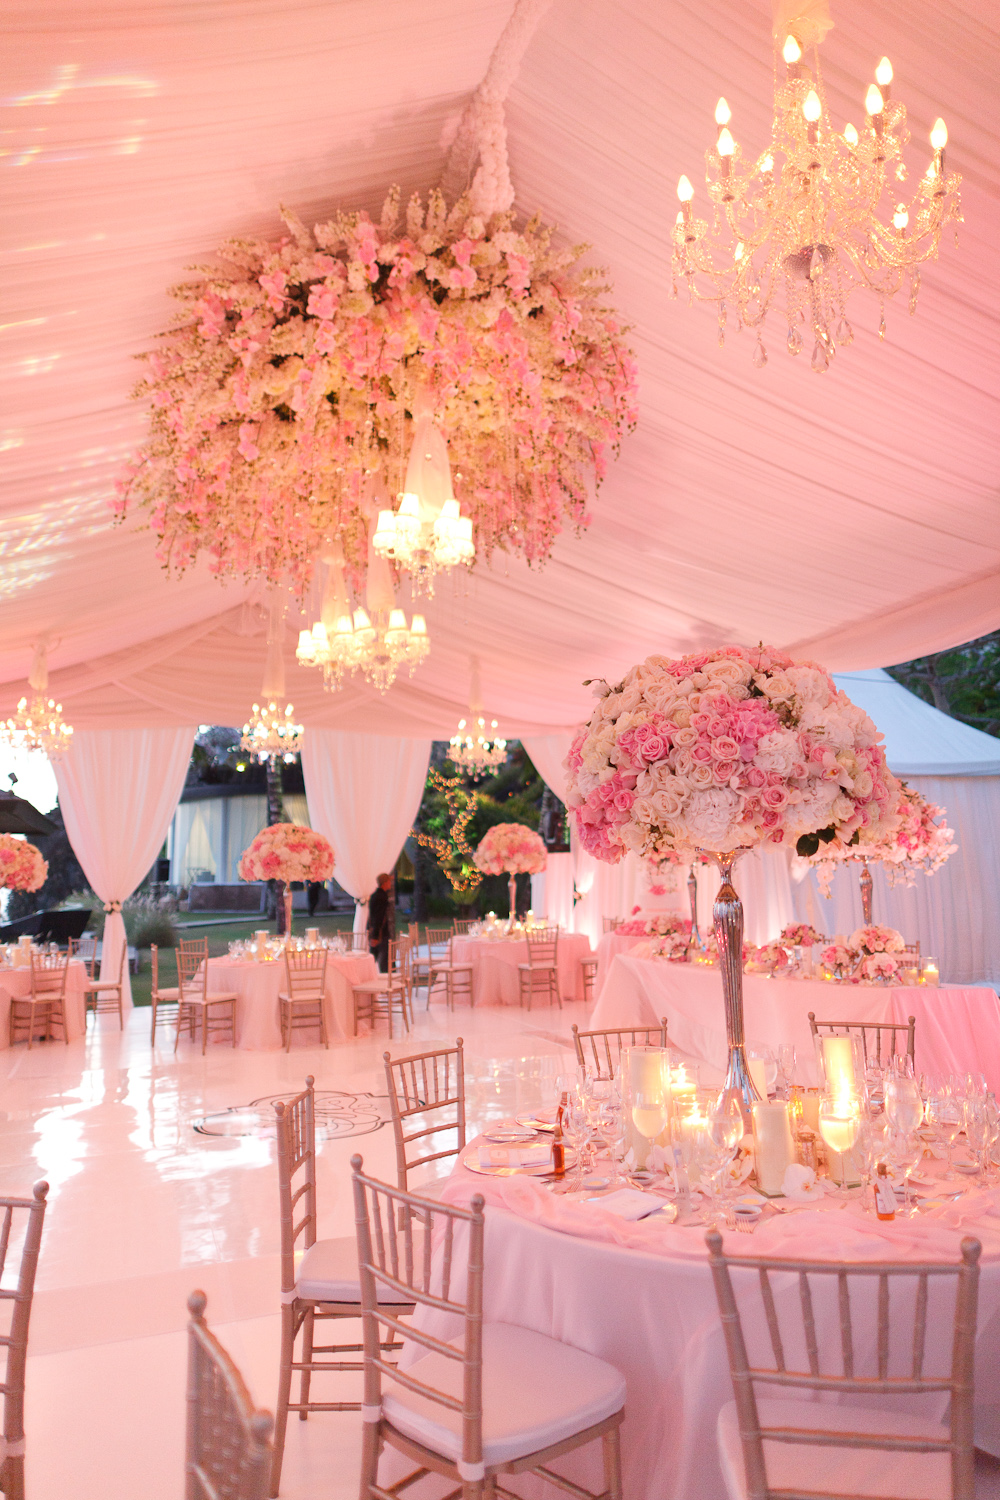 Pink tent wedding with flower chandelier